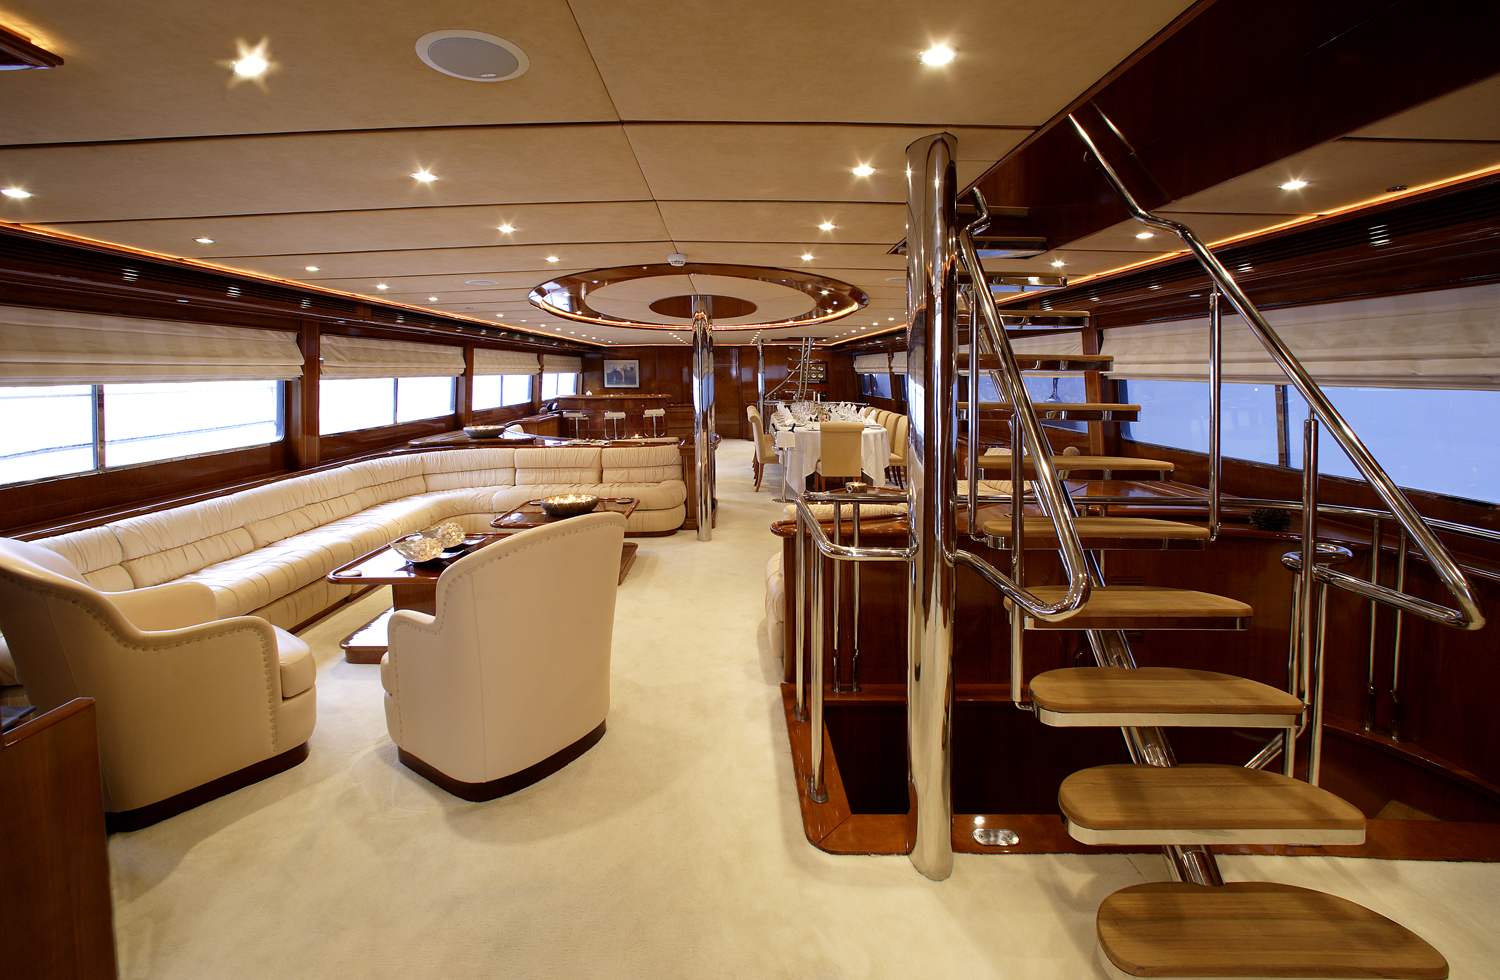 -yachts-and-interiors-design-room-living-room-ideas-houses-interior-room-ideas-r